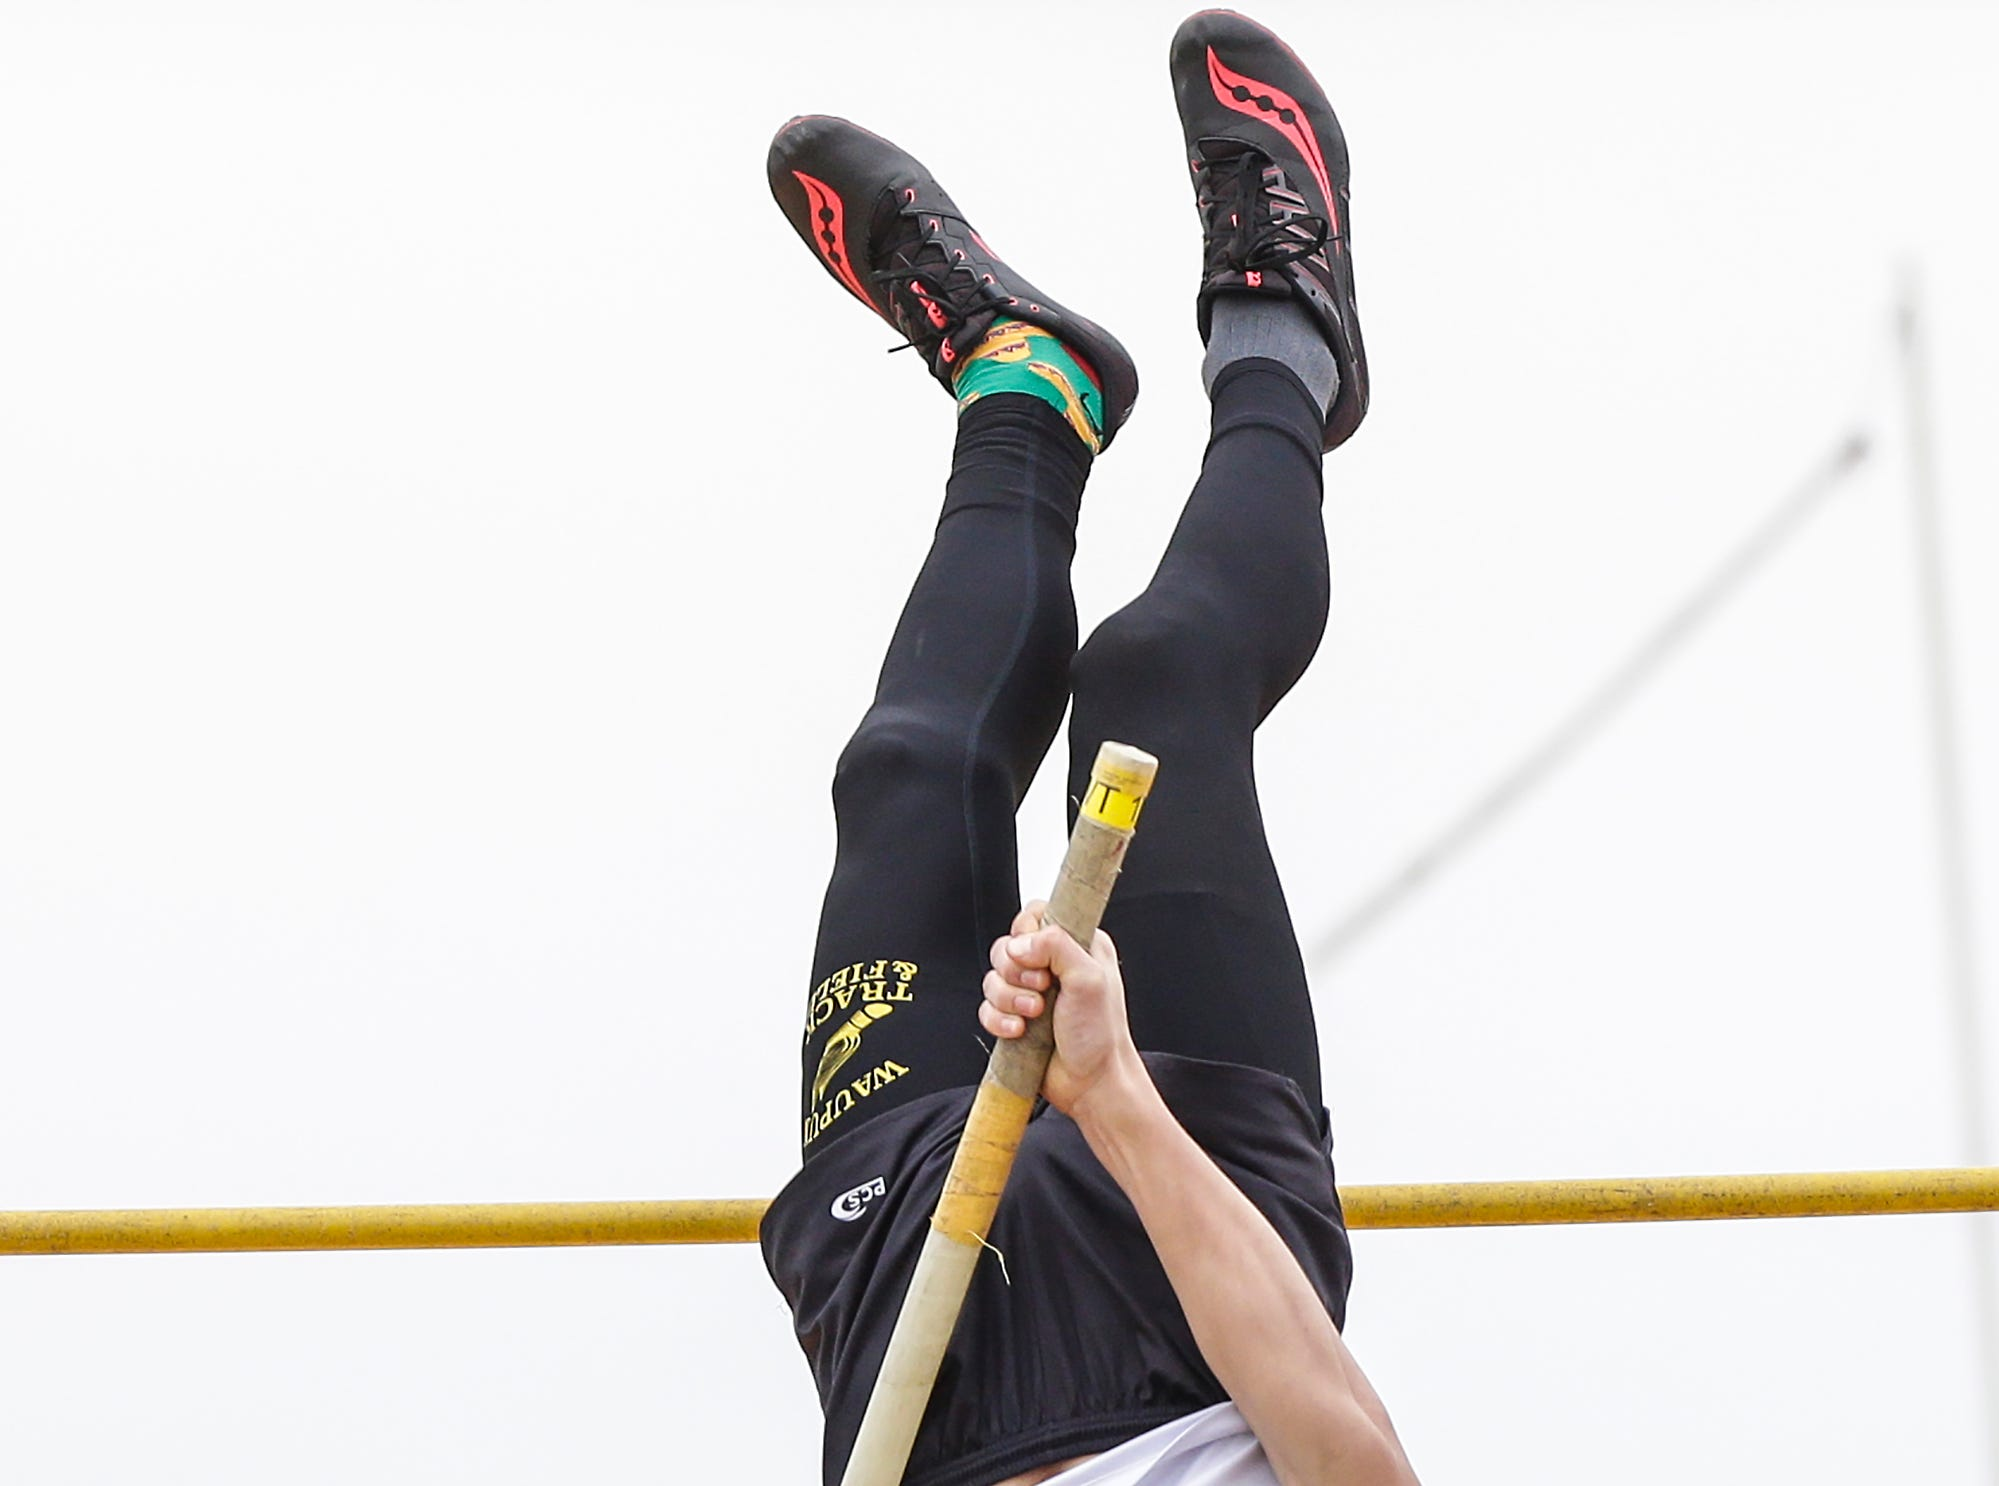 Jarrod Vis of Waupun High School competes in the pole vault Friday, May 3, 2019 at the Waupun High School Invitational track and field meet. Doug Raflik/USA TODAY NETWORK-Wisconsin